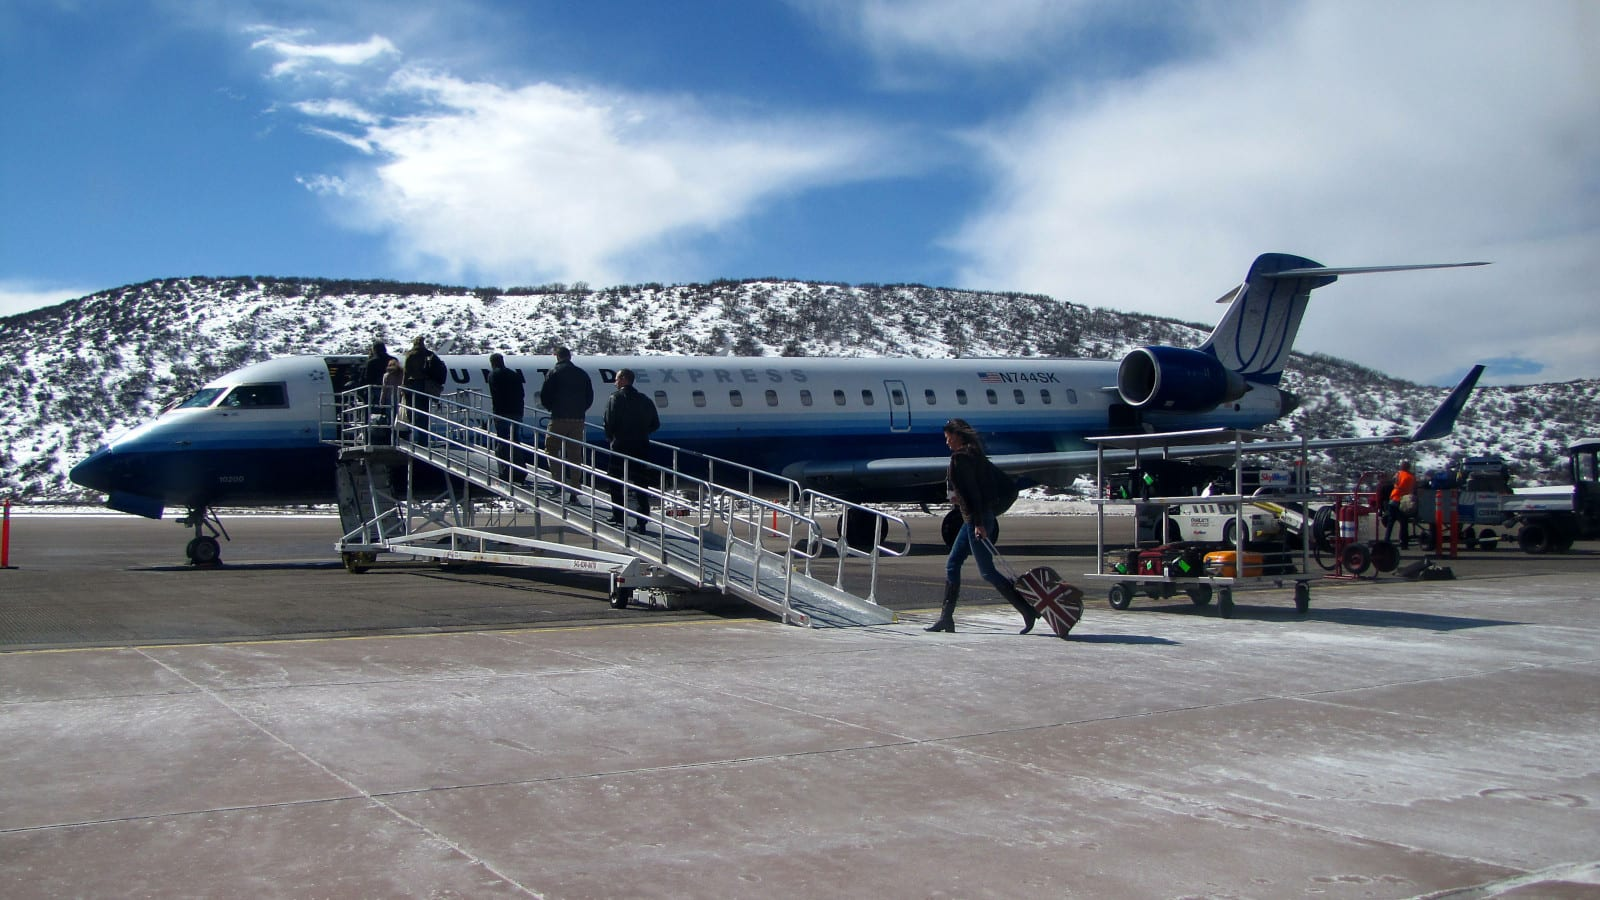 Aspen-Pitkin County Airport SkyWest Airlines Bombardier CRJ-700 Plane Boarding